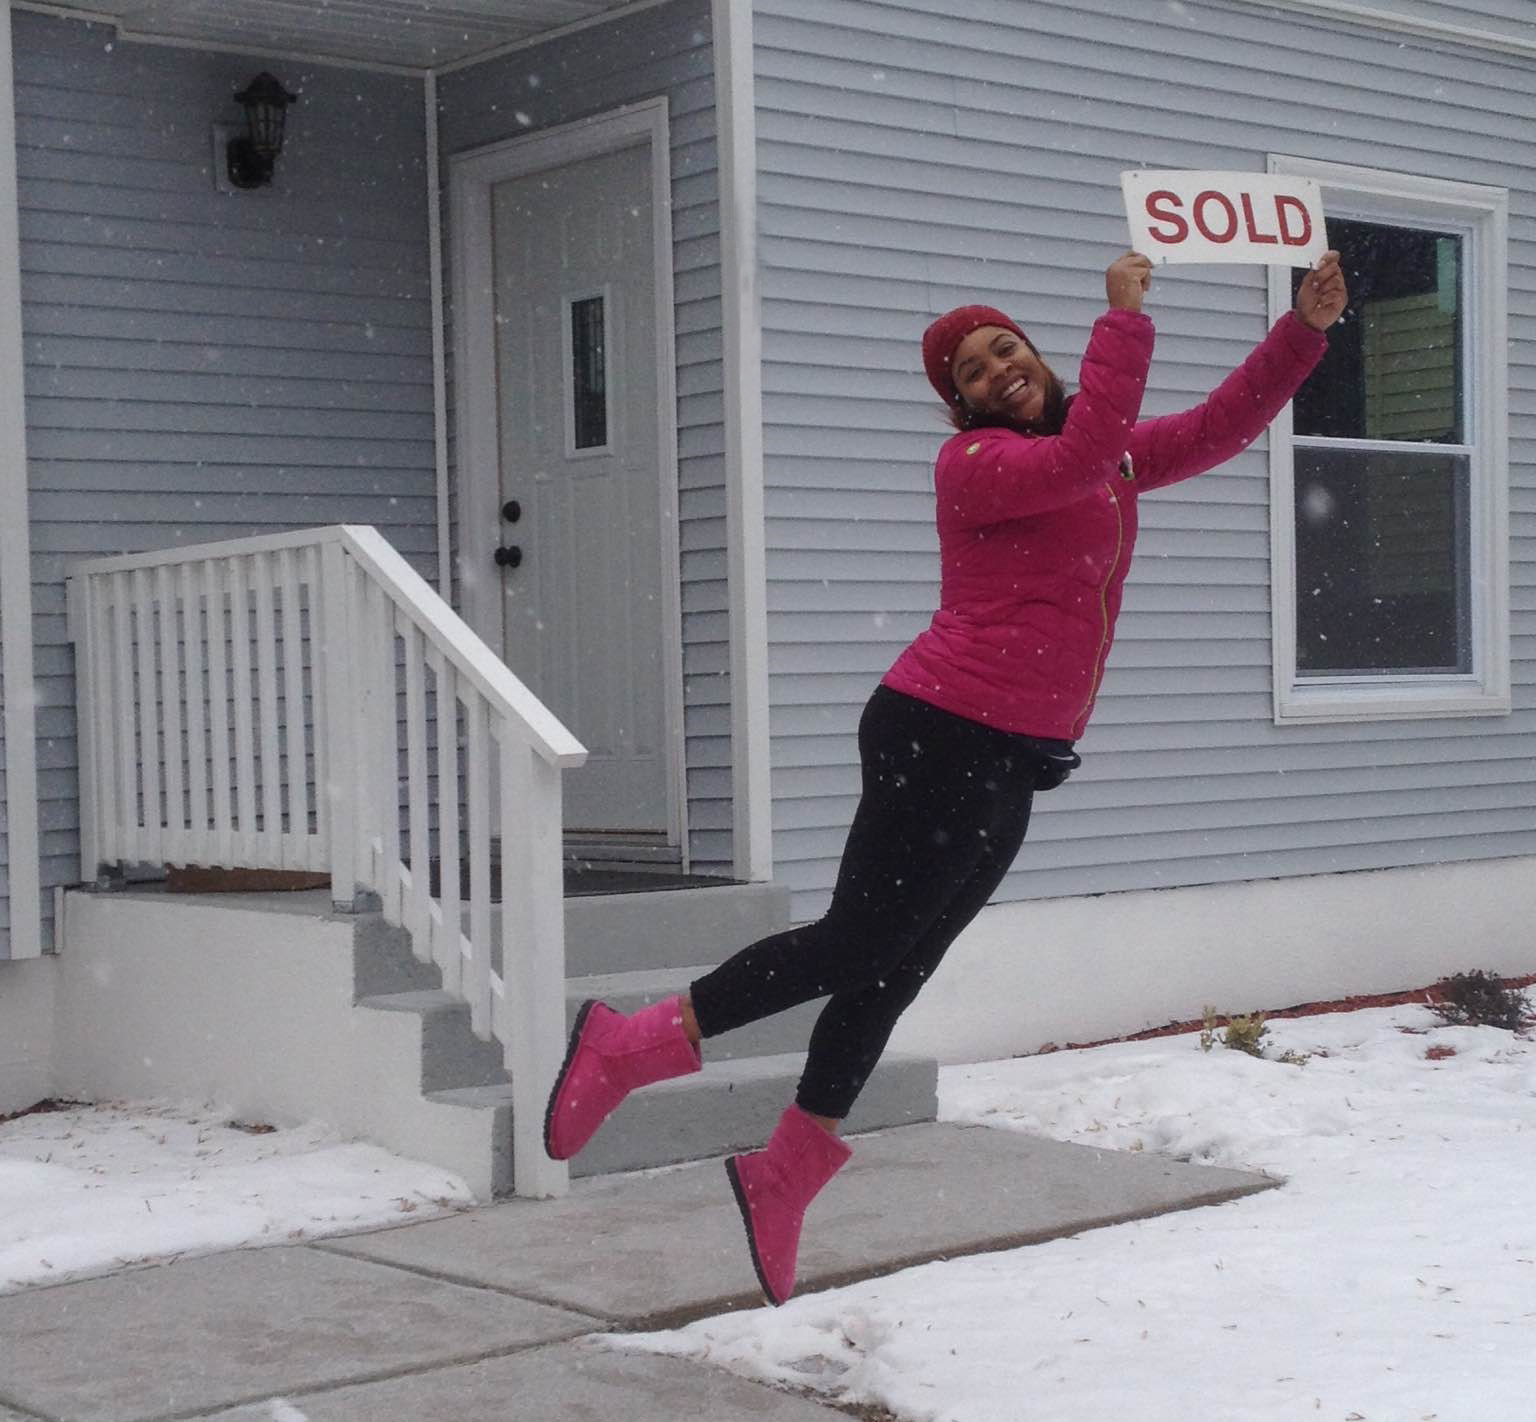 a happy new homeowner leaps into the air at her new home